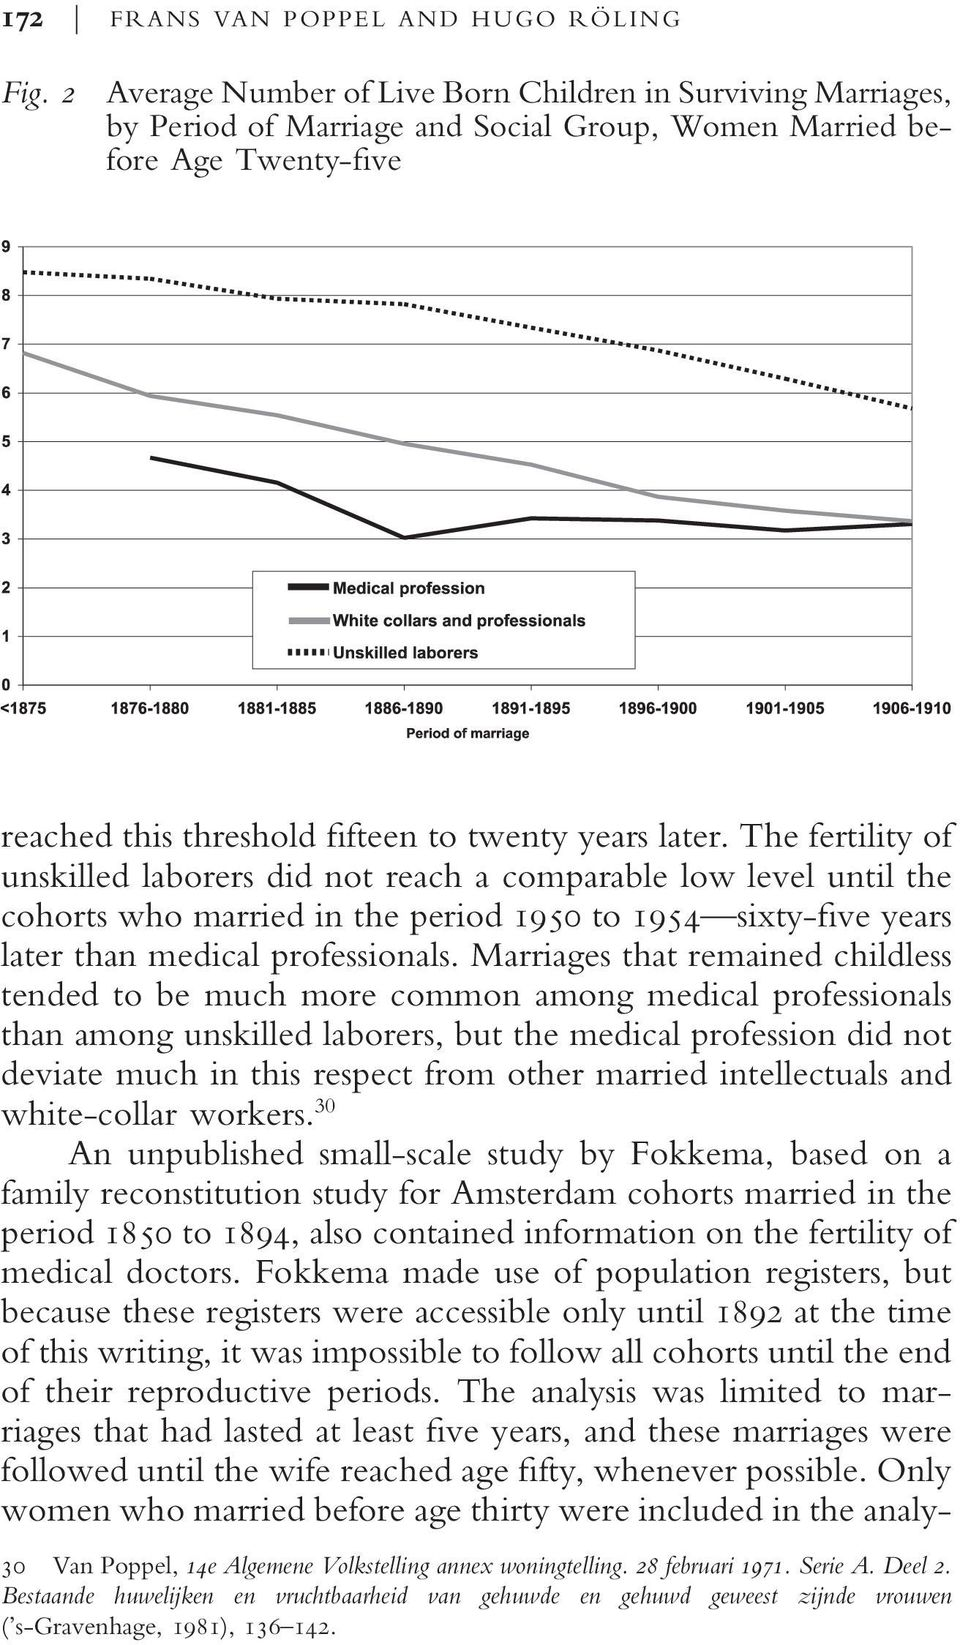 The fertility of unskilled laborers did not reach a comparable low level until the cohorts who married in the period 1950 to 1954 sixty-ªve years later than medical professionals.